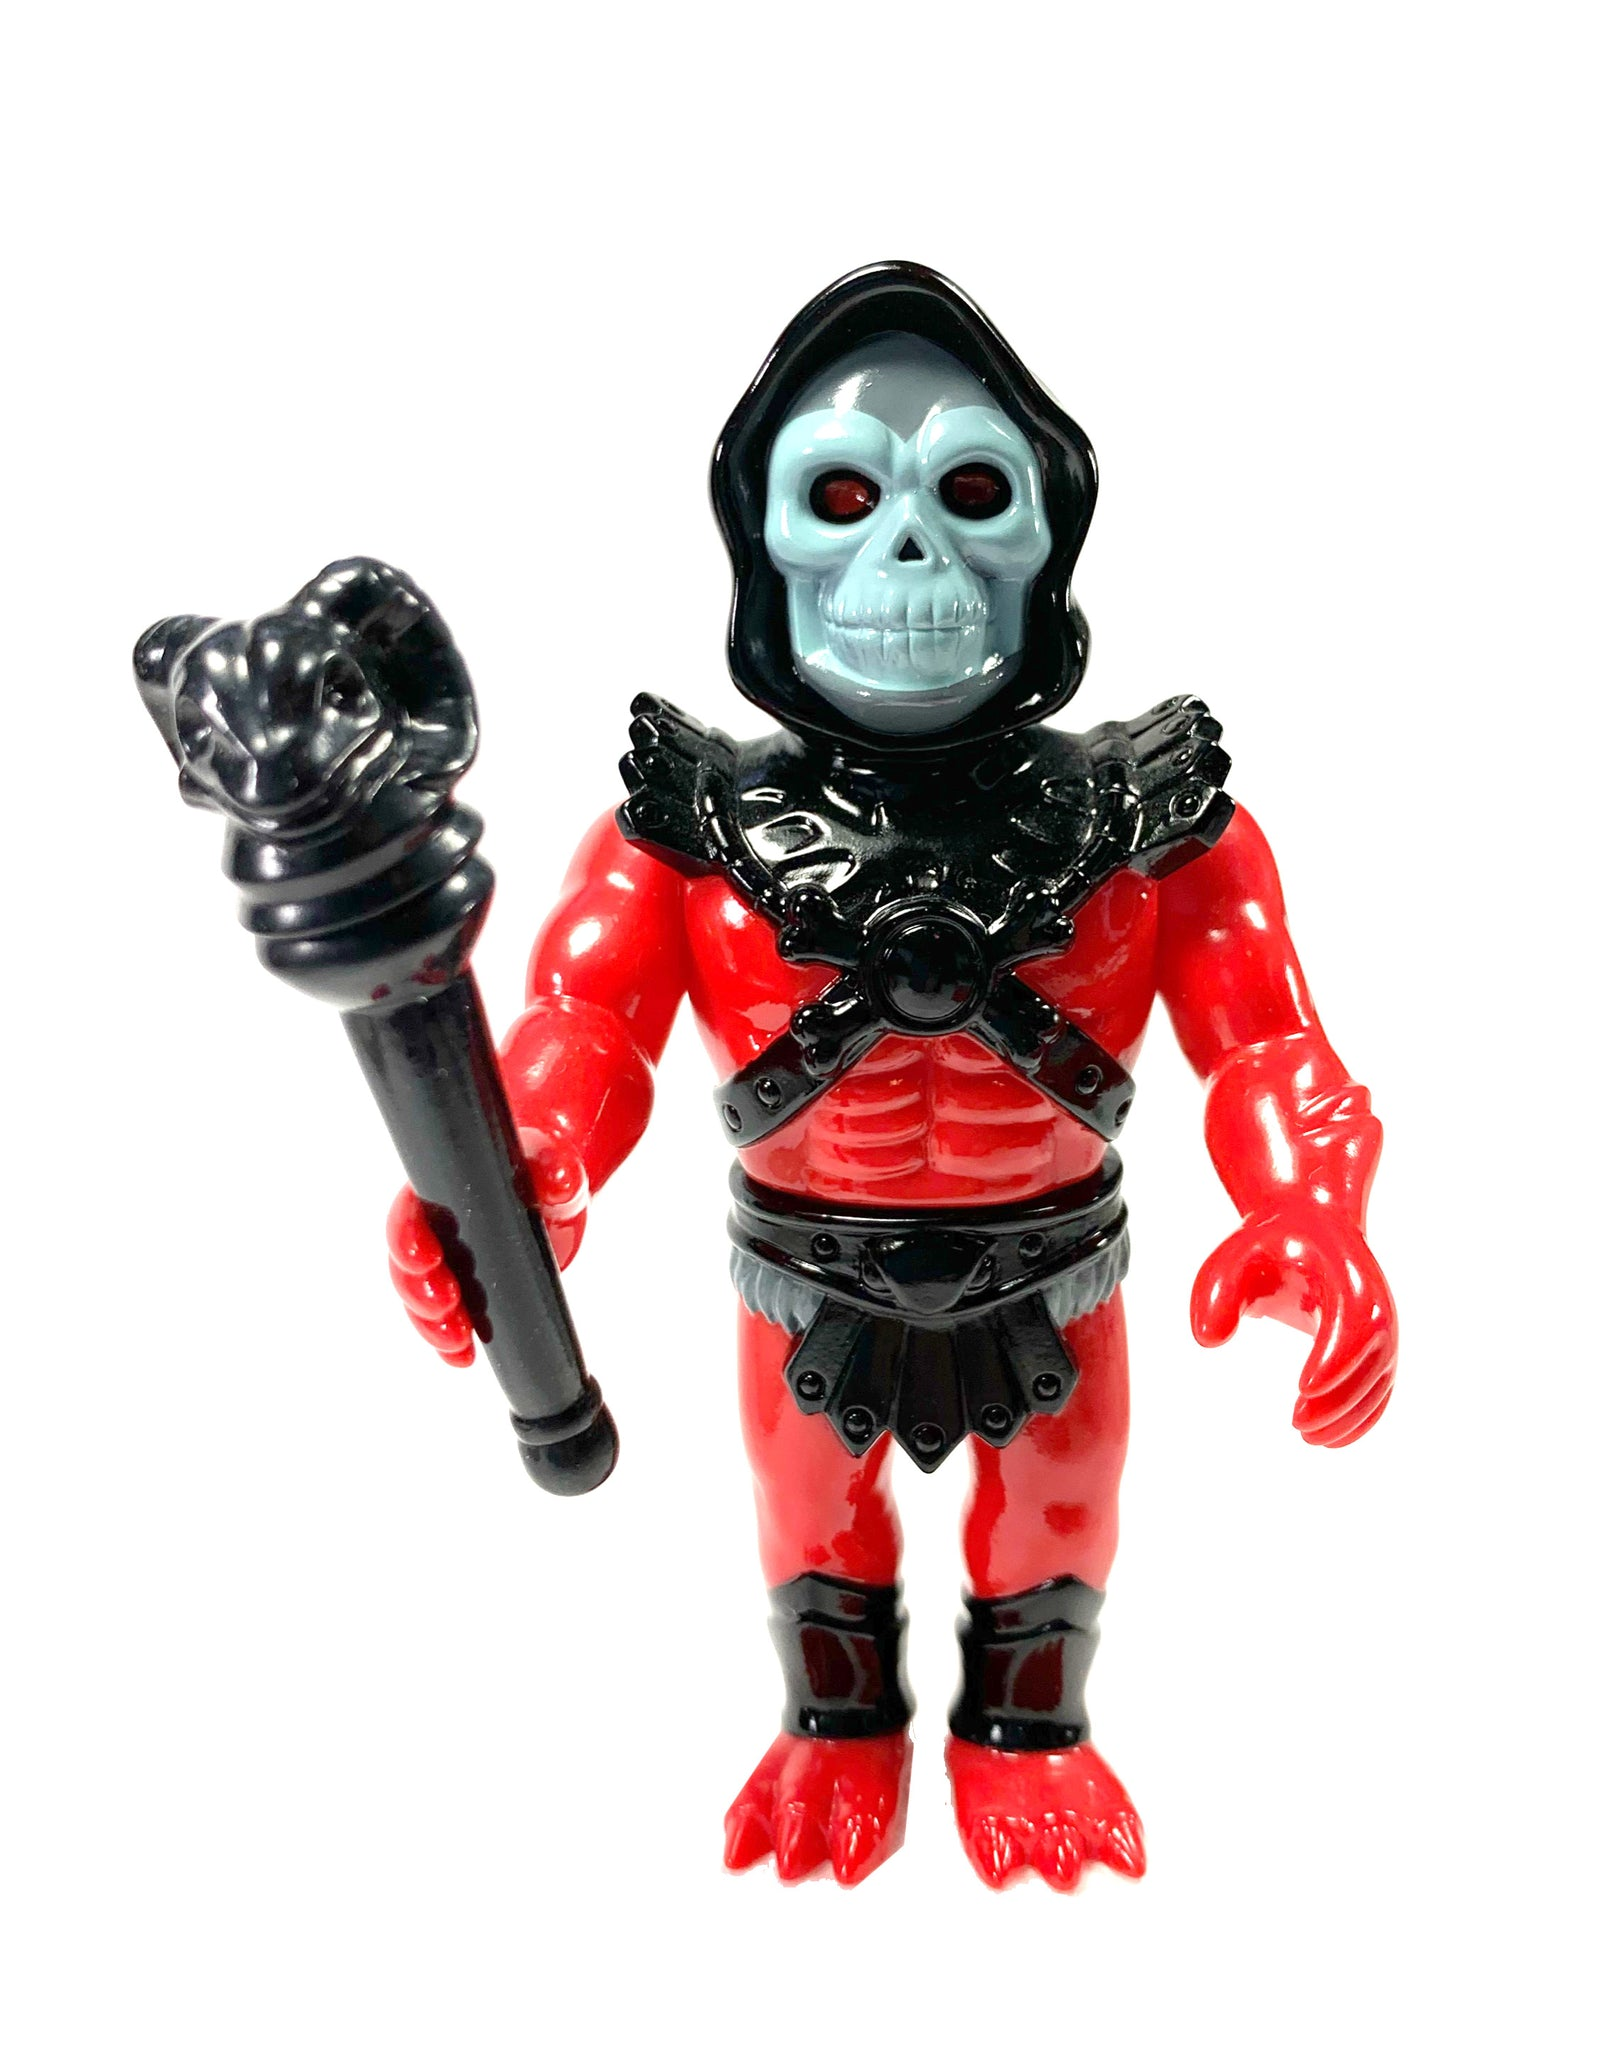 "Skeletor Boxed Vinyl figure, MOTU series from Super 7, New in Box 4"" Tall."